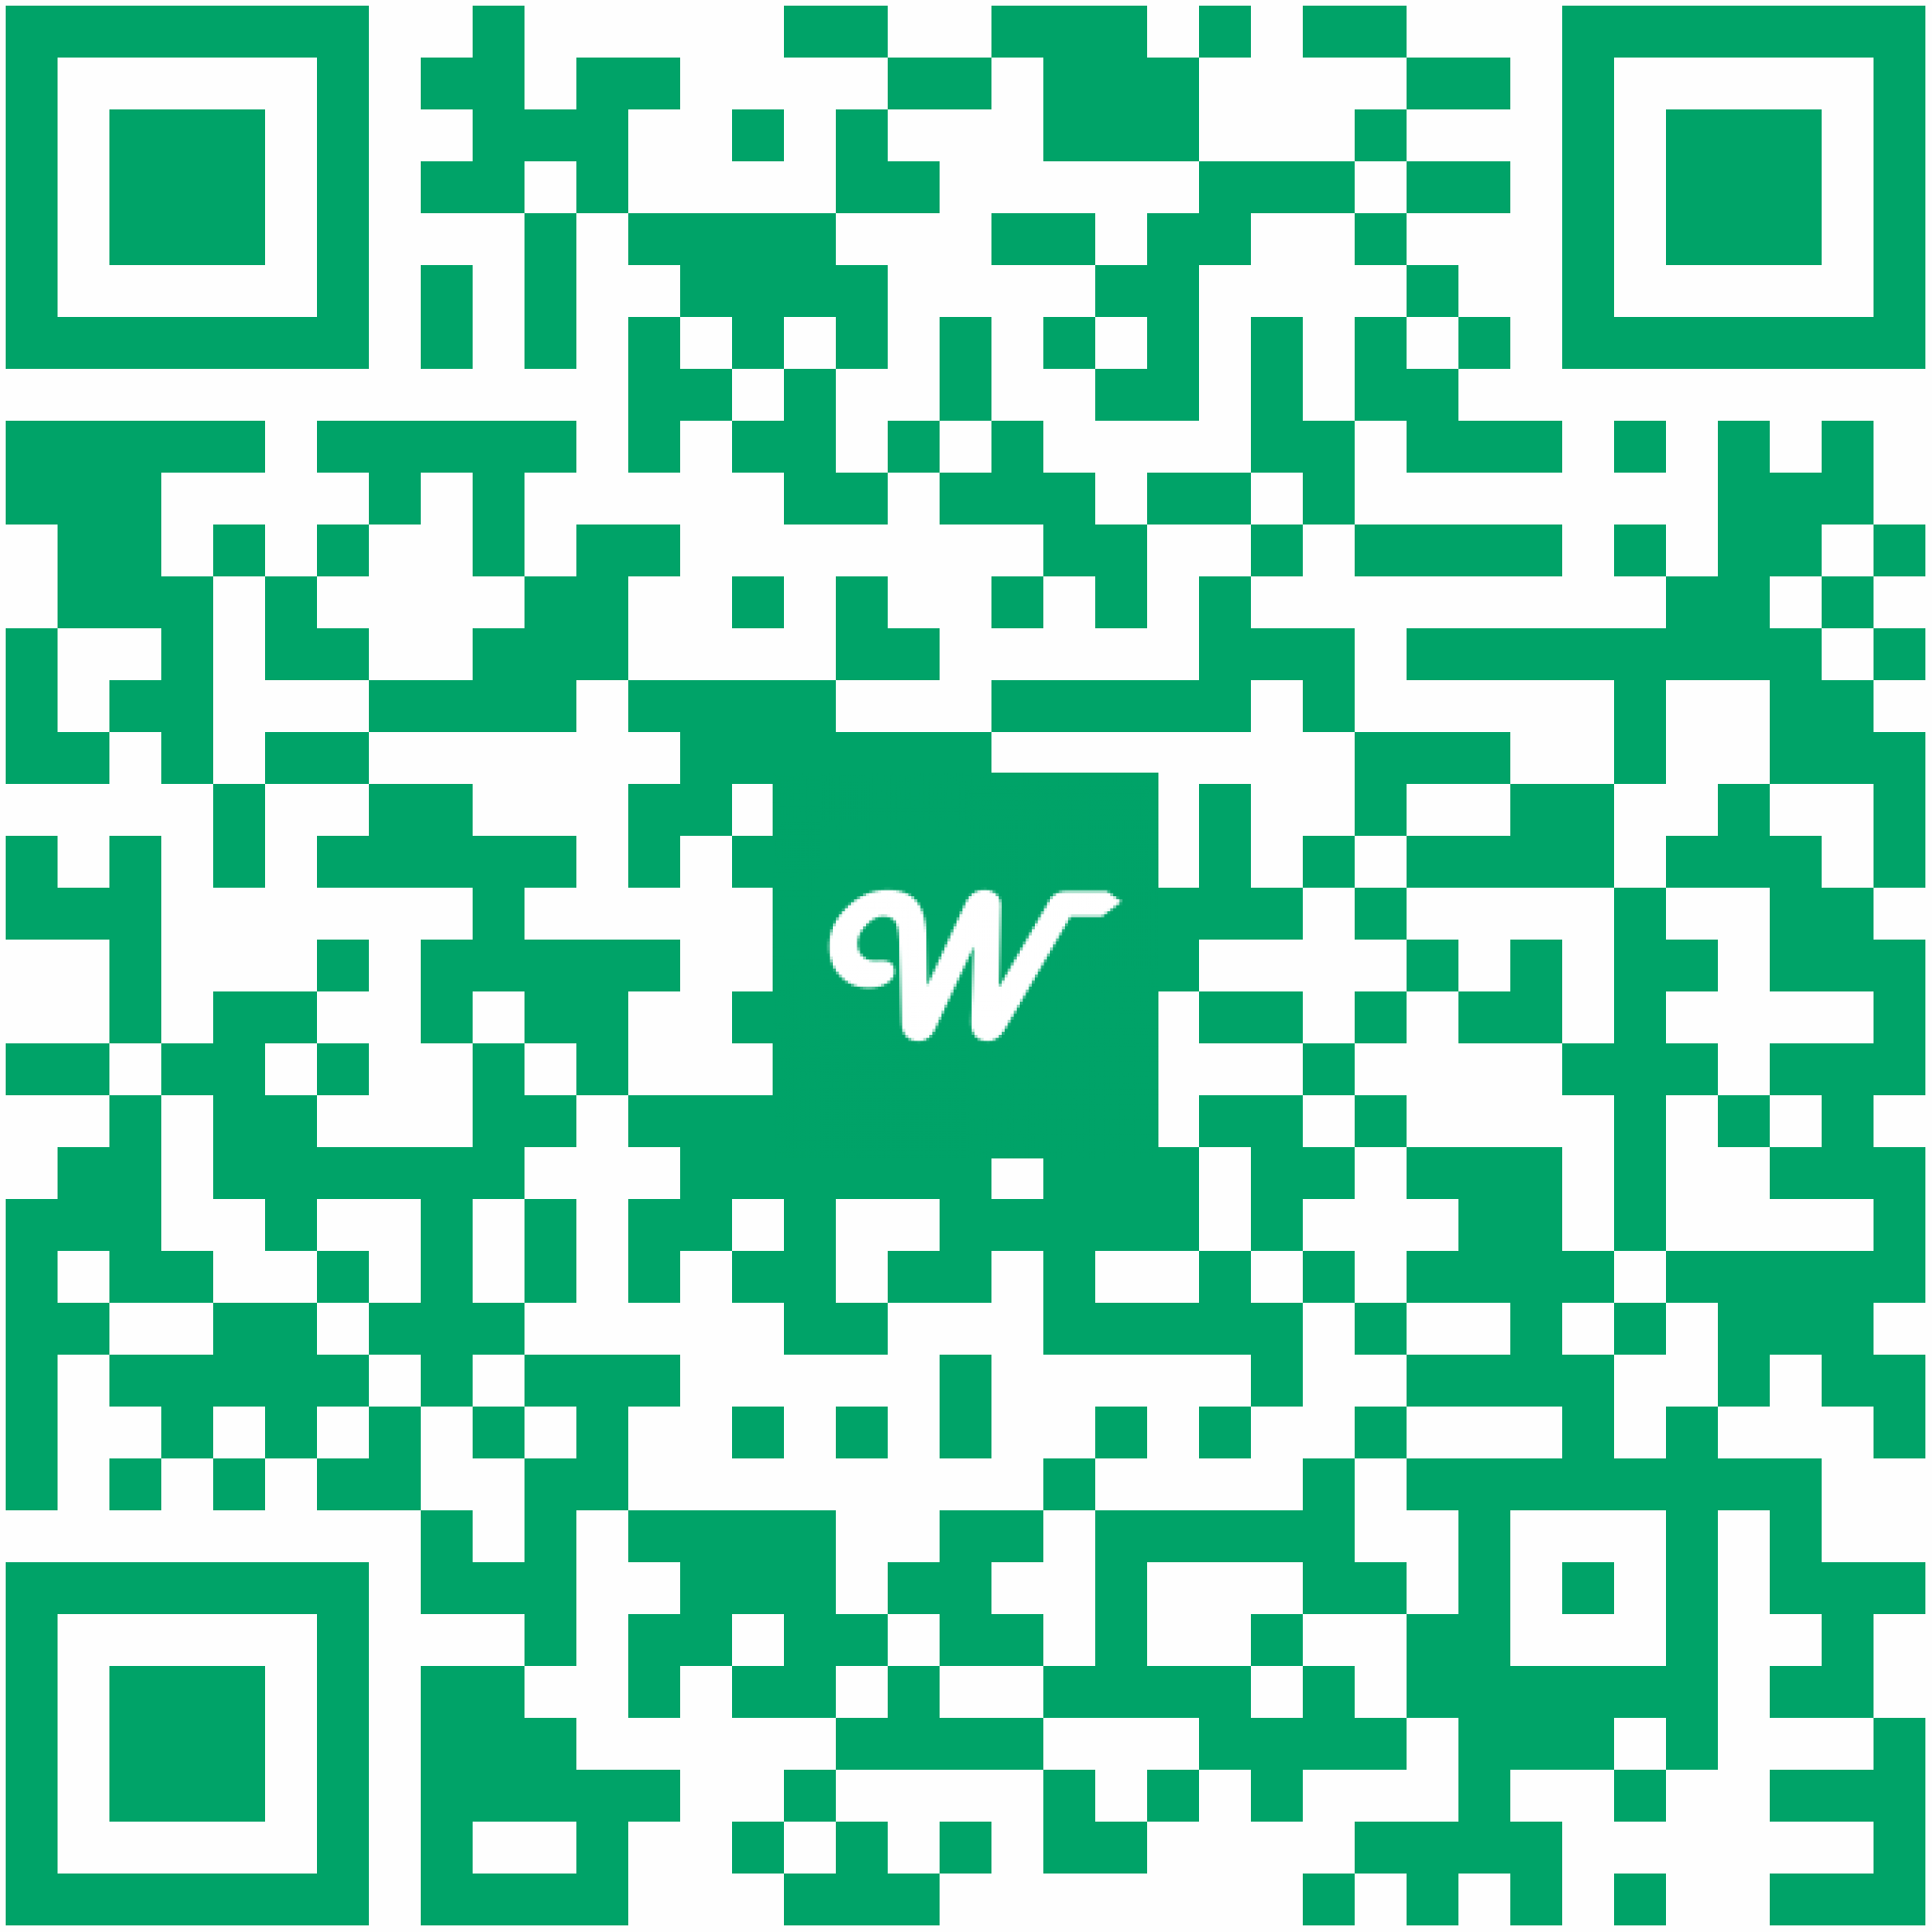 Printable QR code for 826 N Winchester Blvd